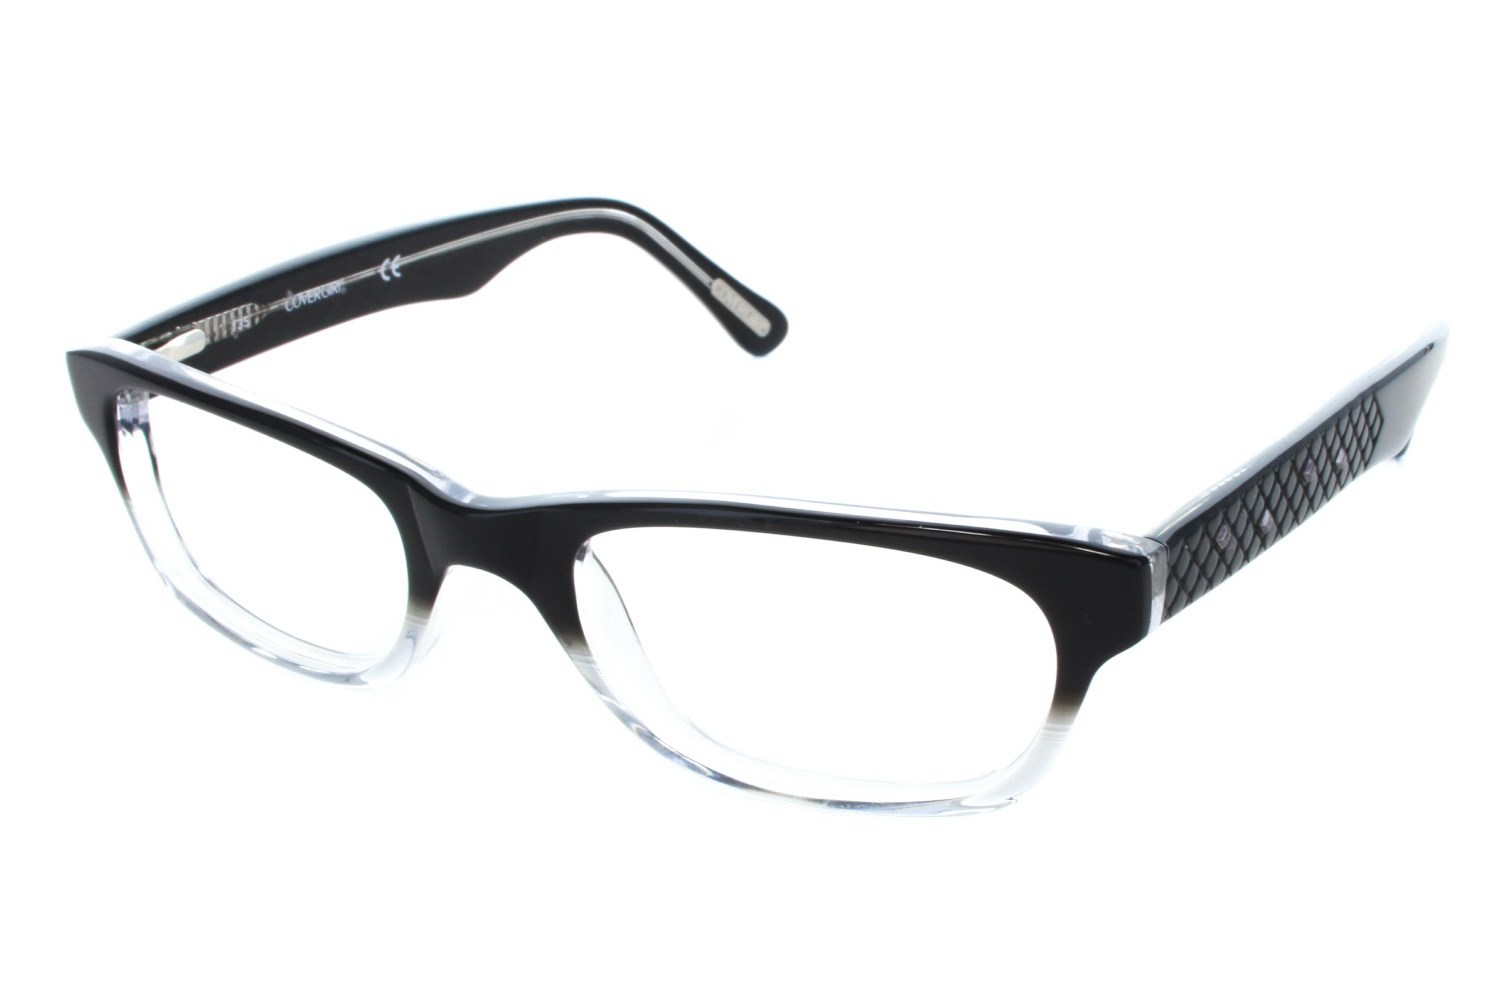 Covergirl CG0513 Prescription Eyeglasses Frames